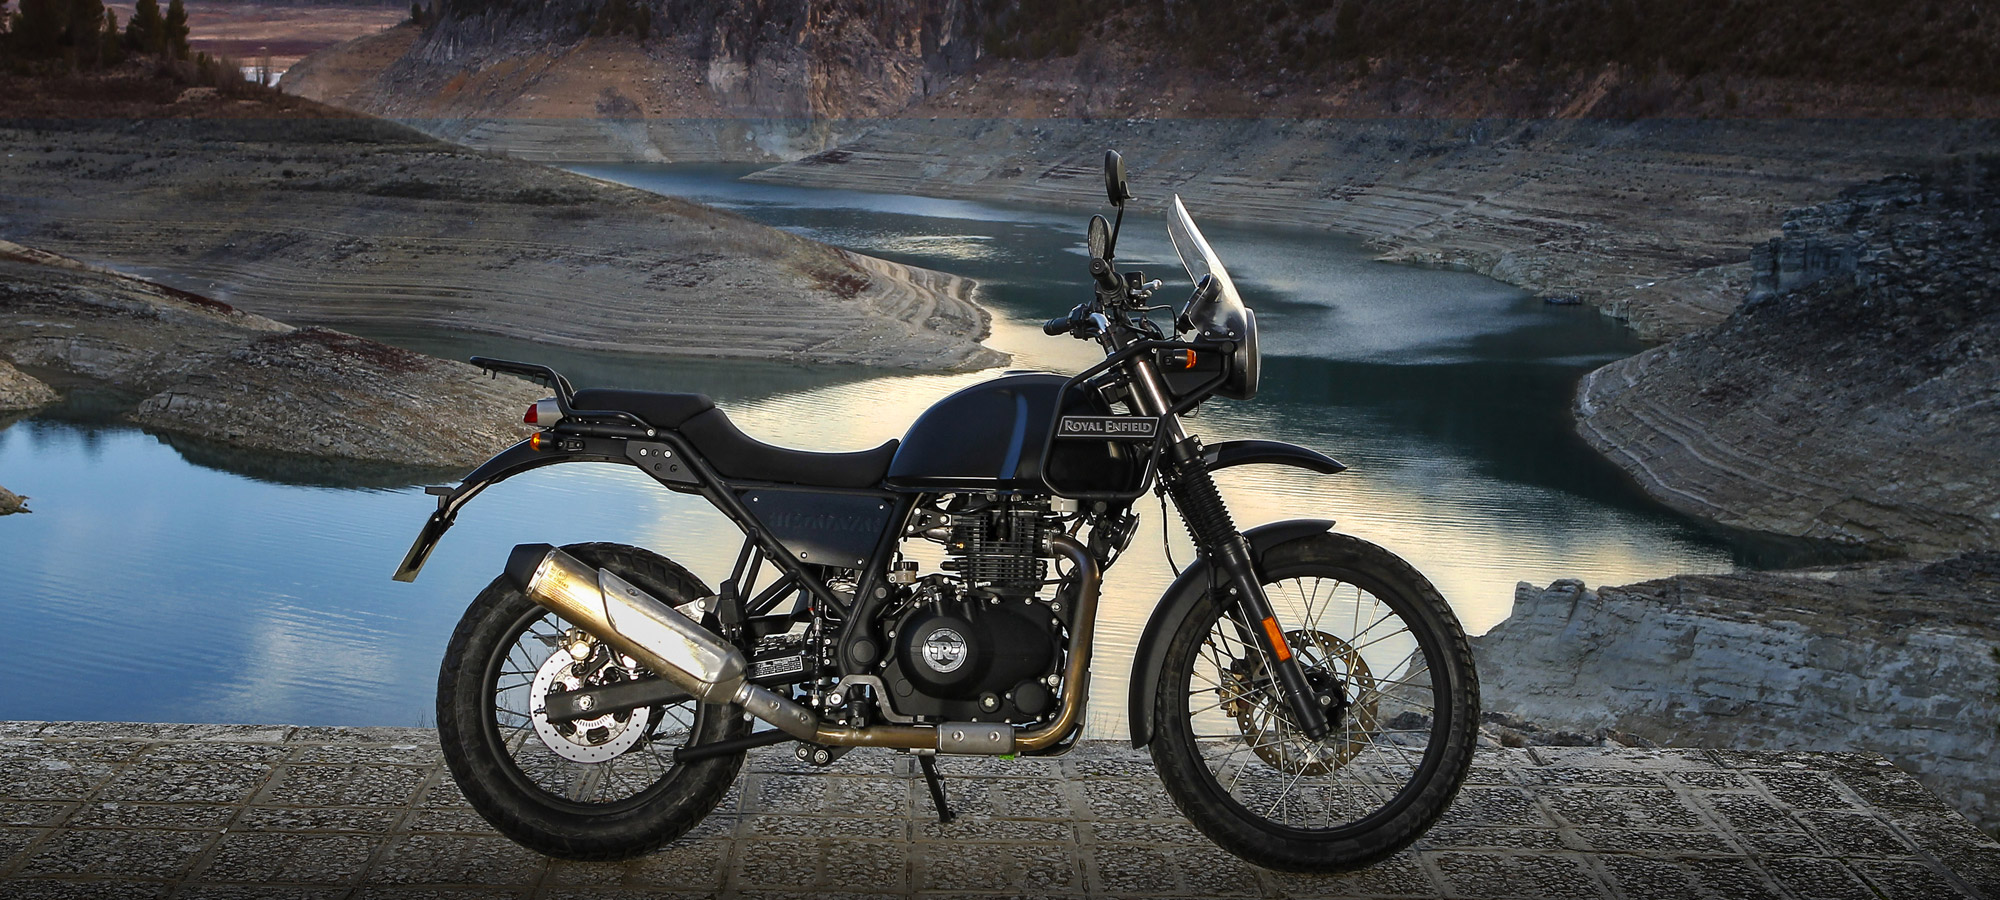 Sensational The Royal Enfield Himalayan Is An Adv Bike For A New World Cjindustries Chair Design For Home Cjindustriesco